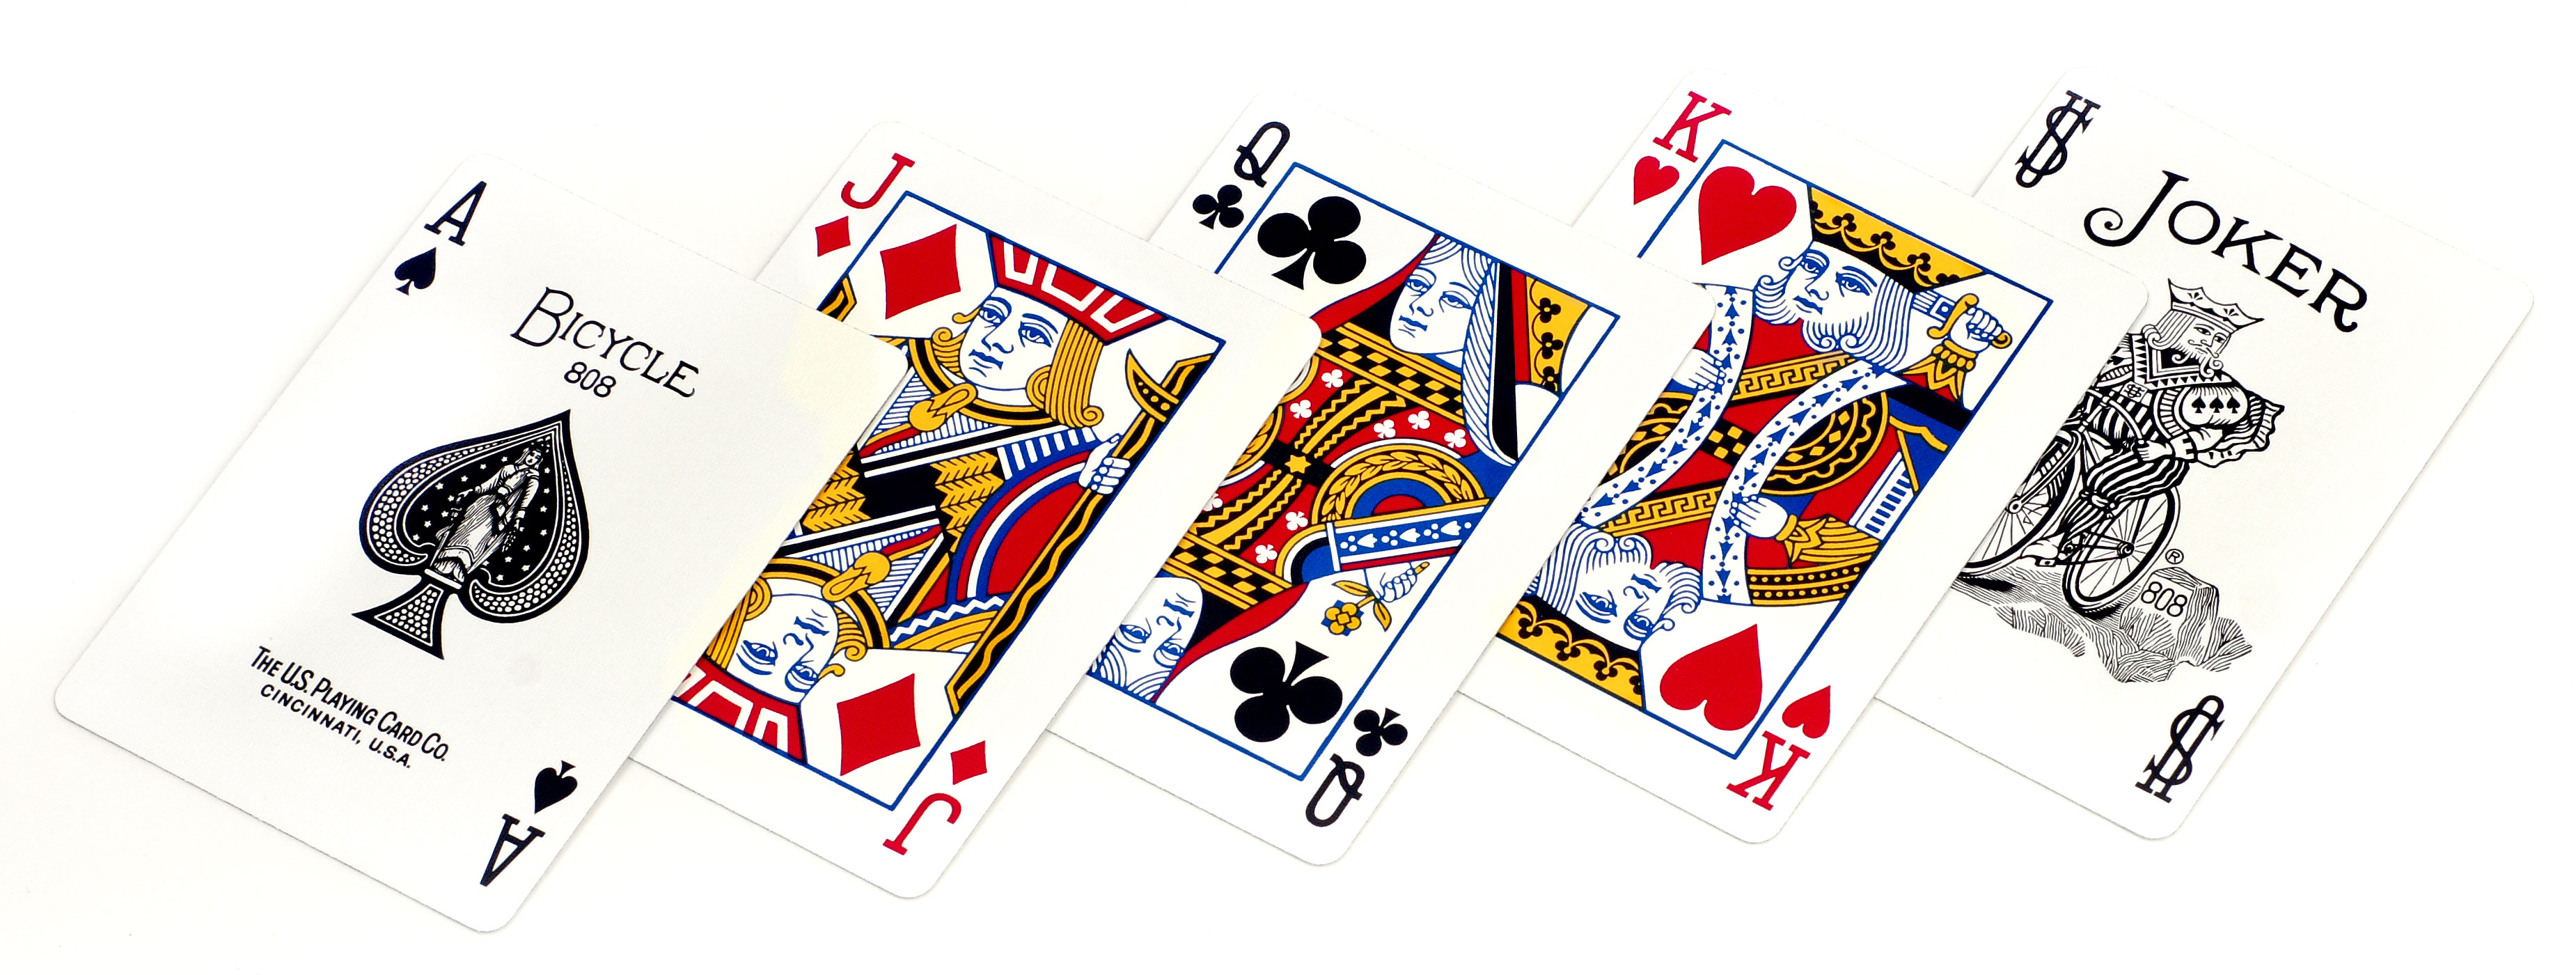 play games lateral gambling card